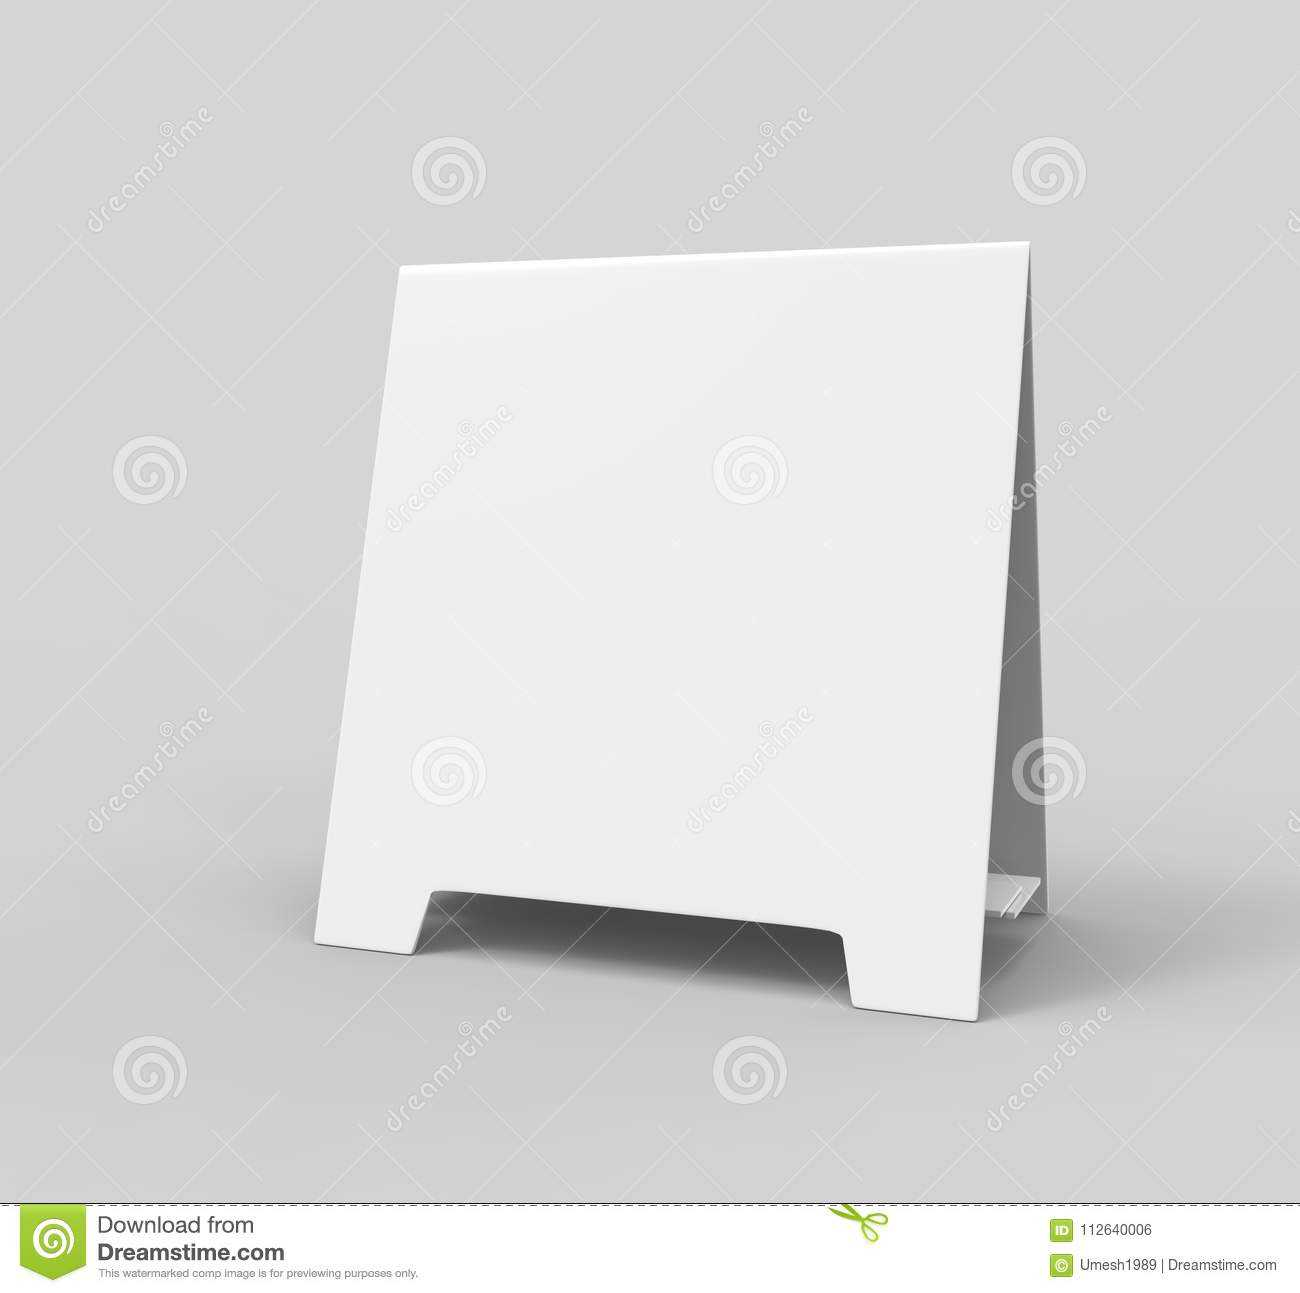 Tablet Tent Card Talkers Promotional Menu Card White Blank Within Blank Tent Card Template